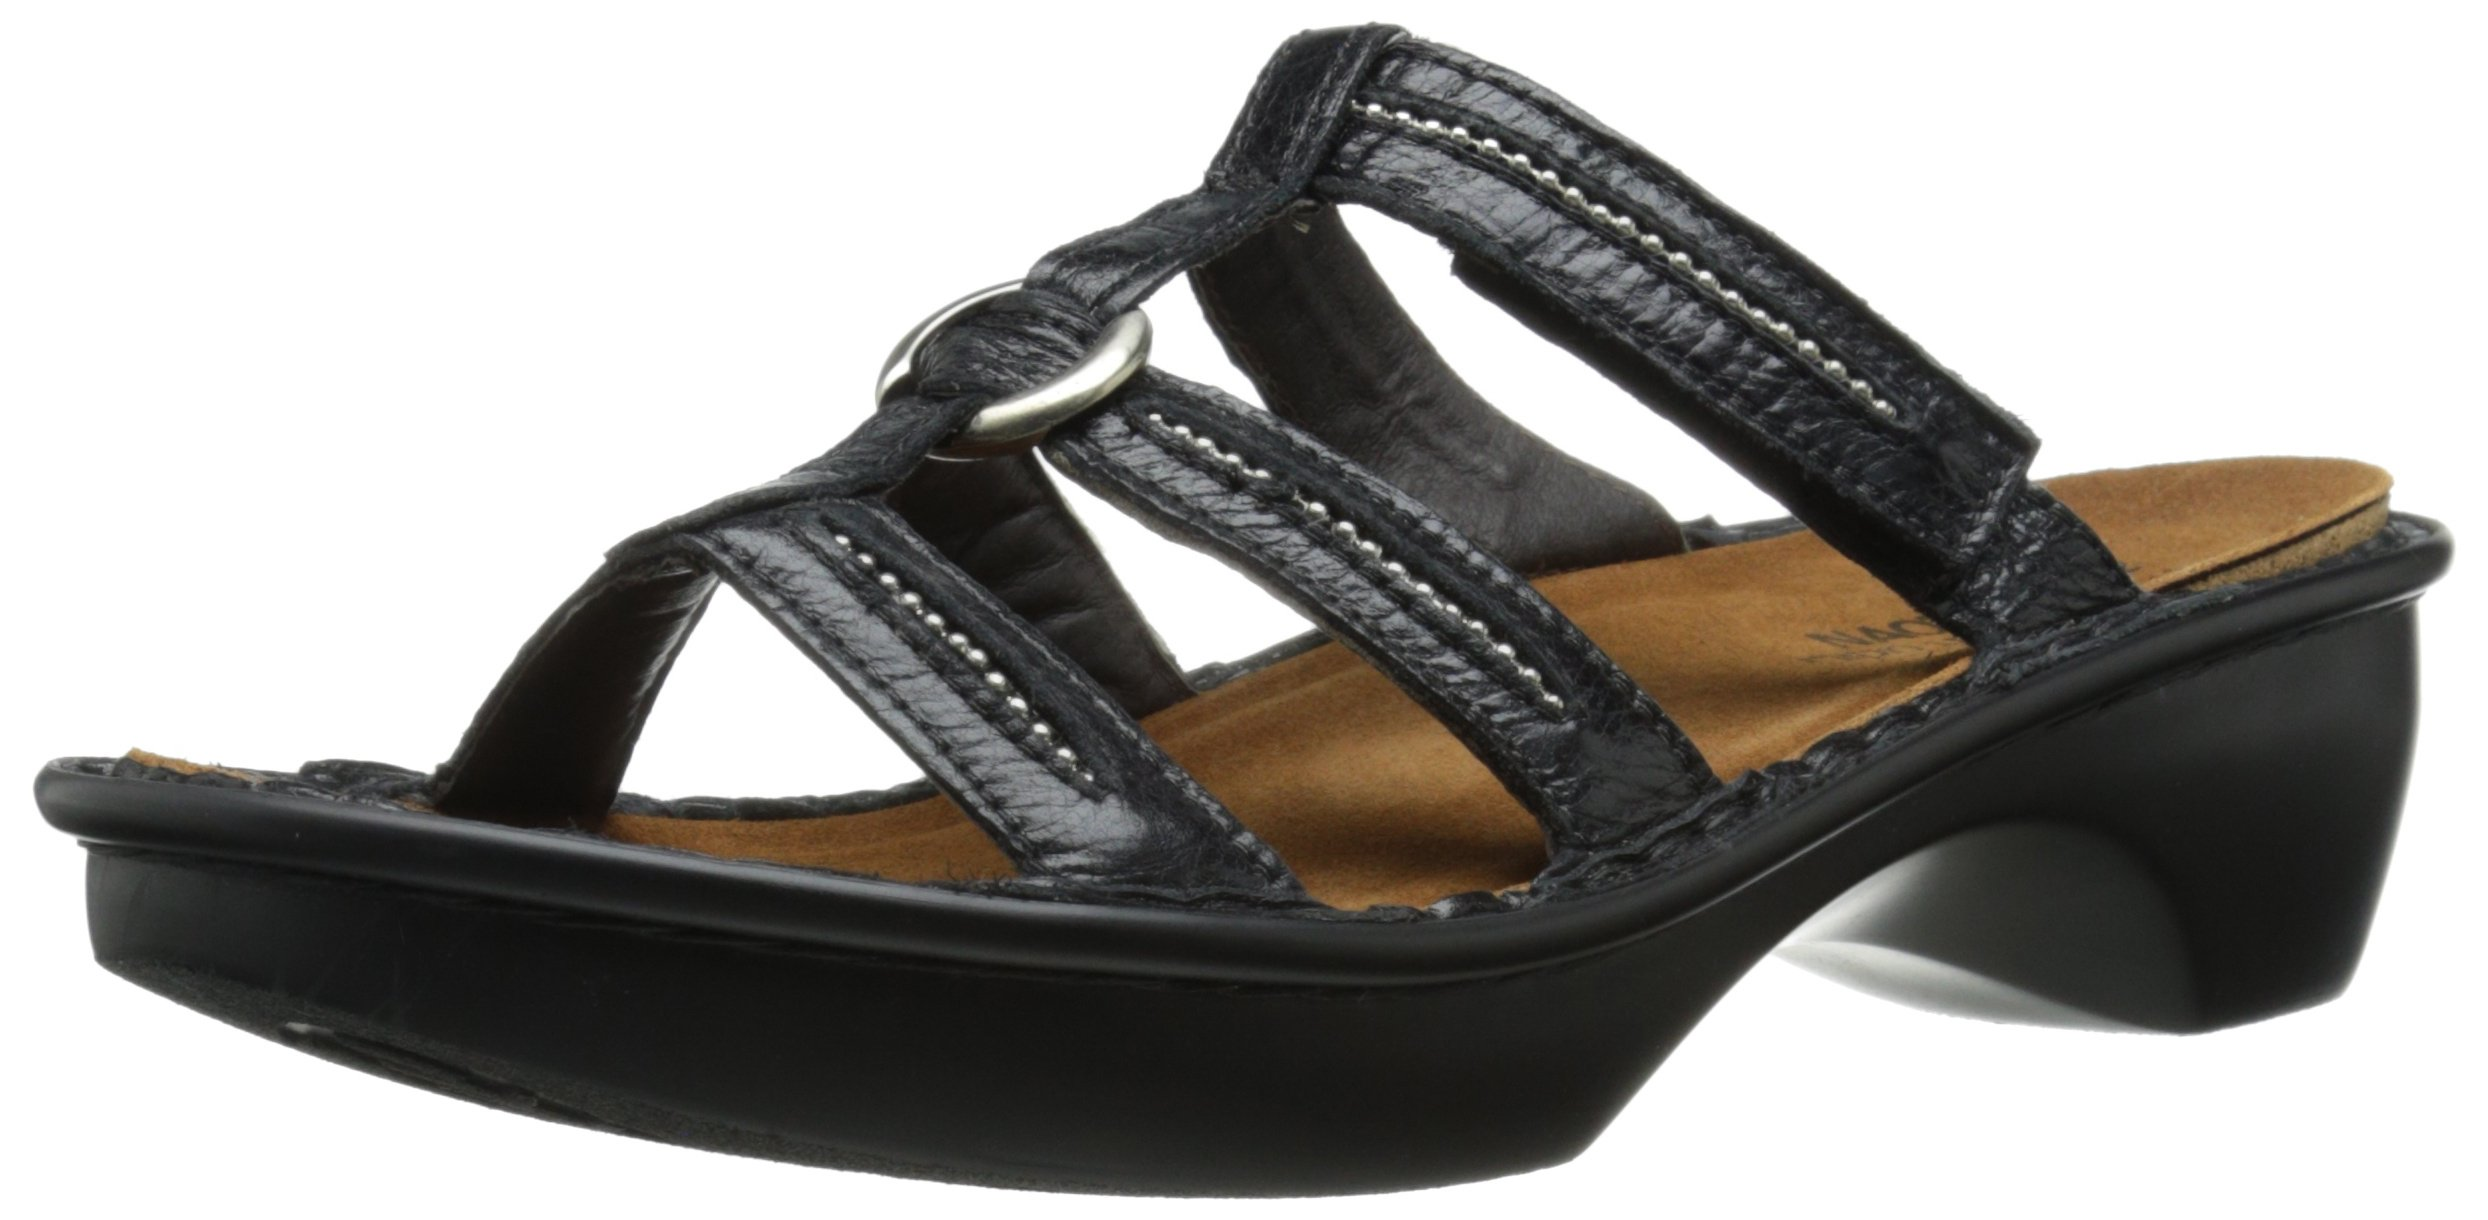 Naot Women's Brasilia Wedge Sandal, Black Madras Leather, 35 EU/4.5-5 M US